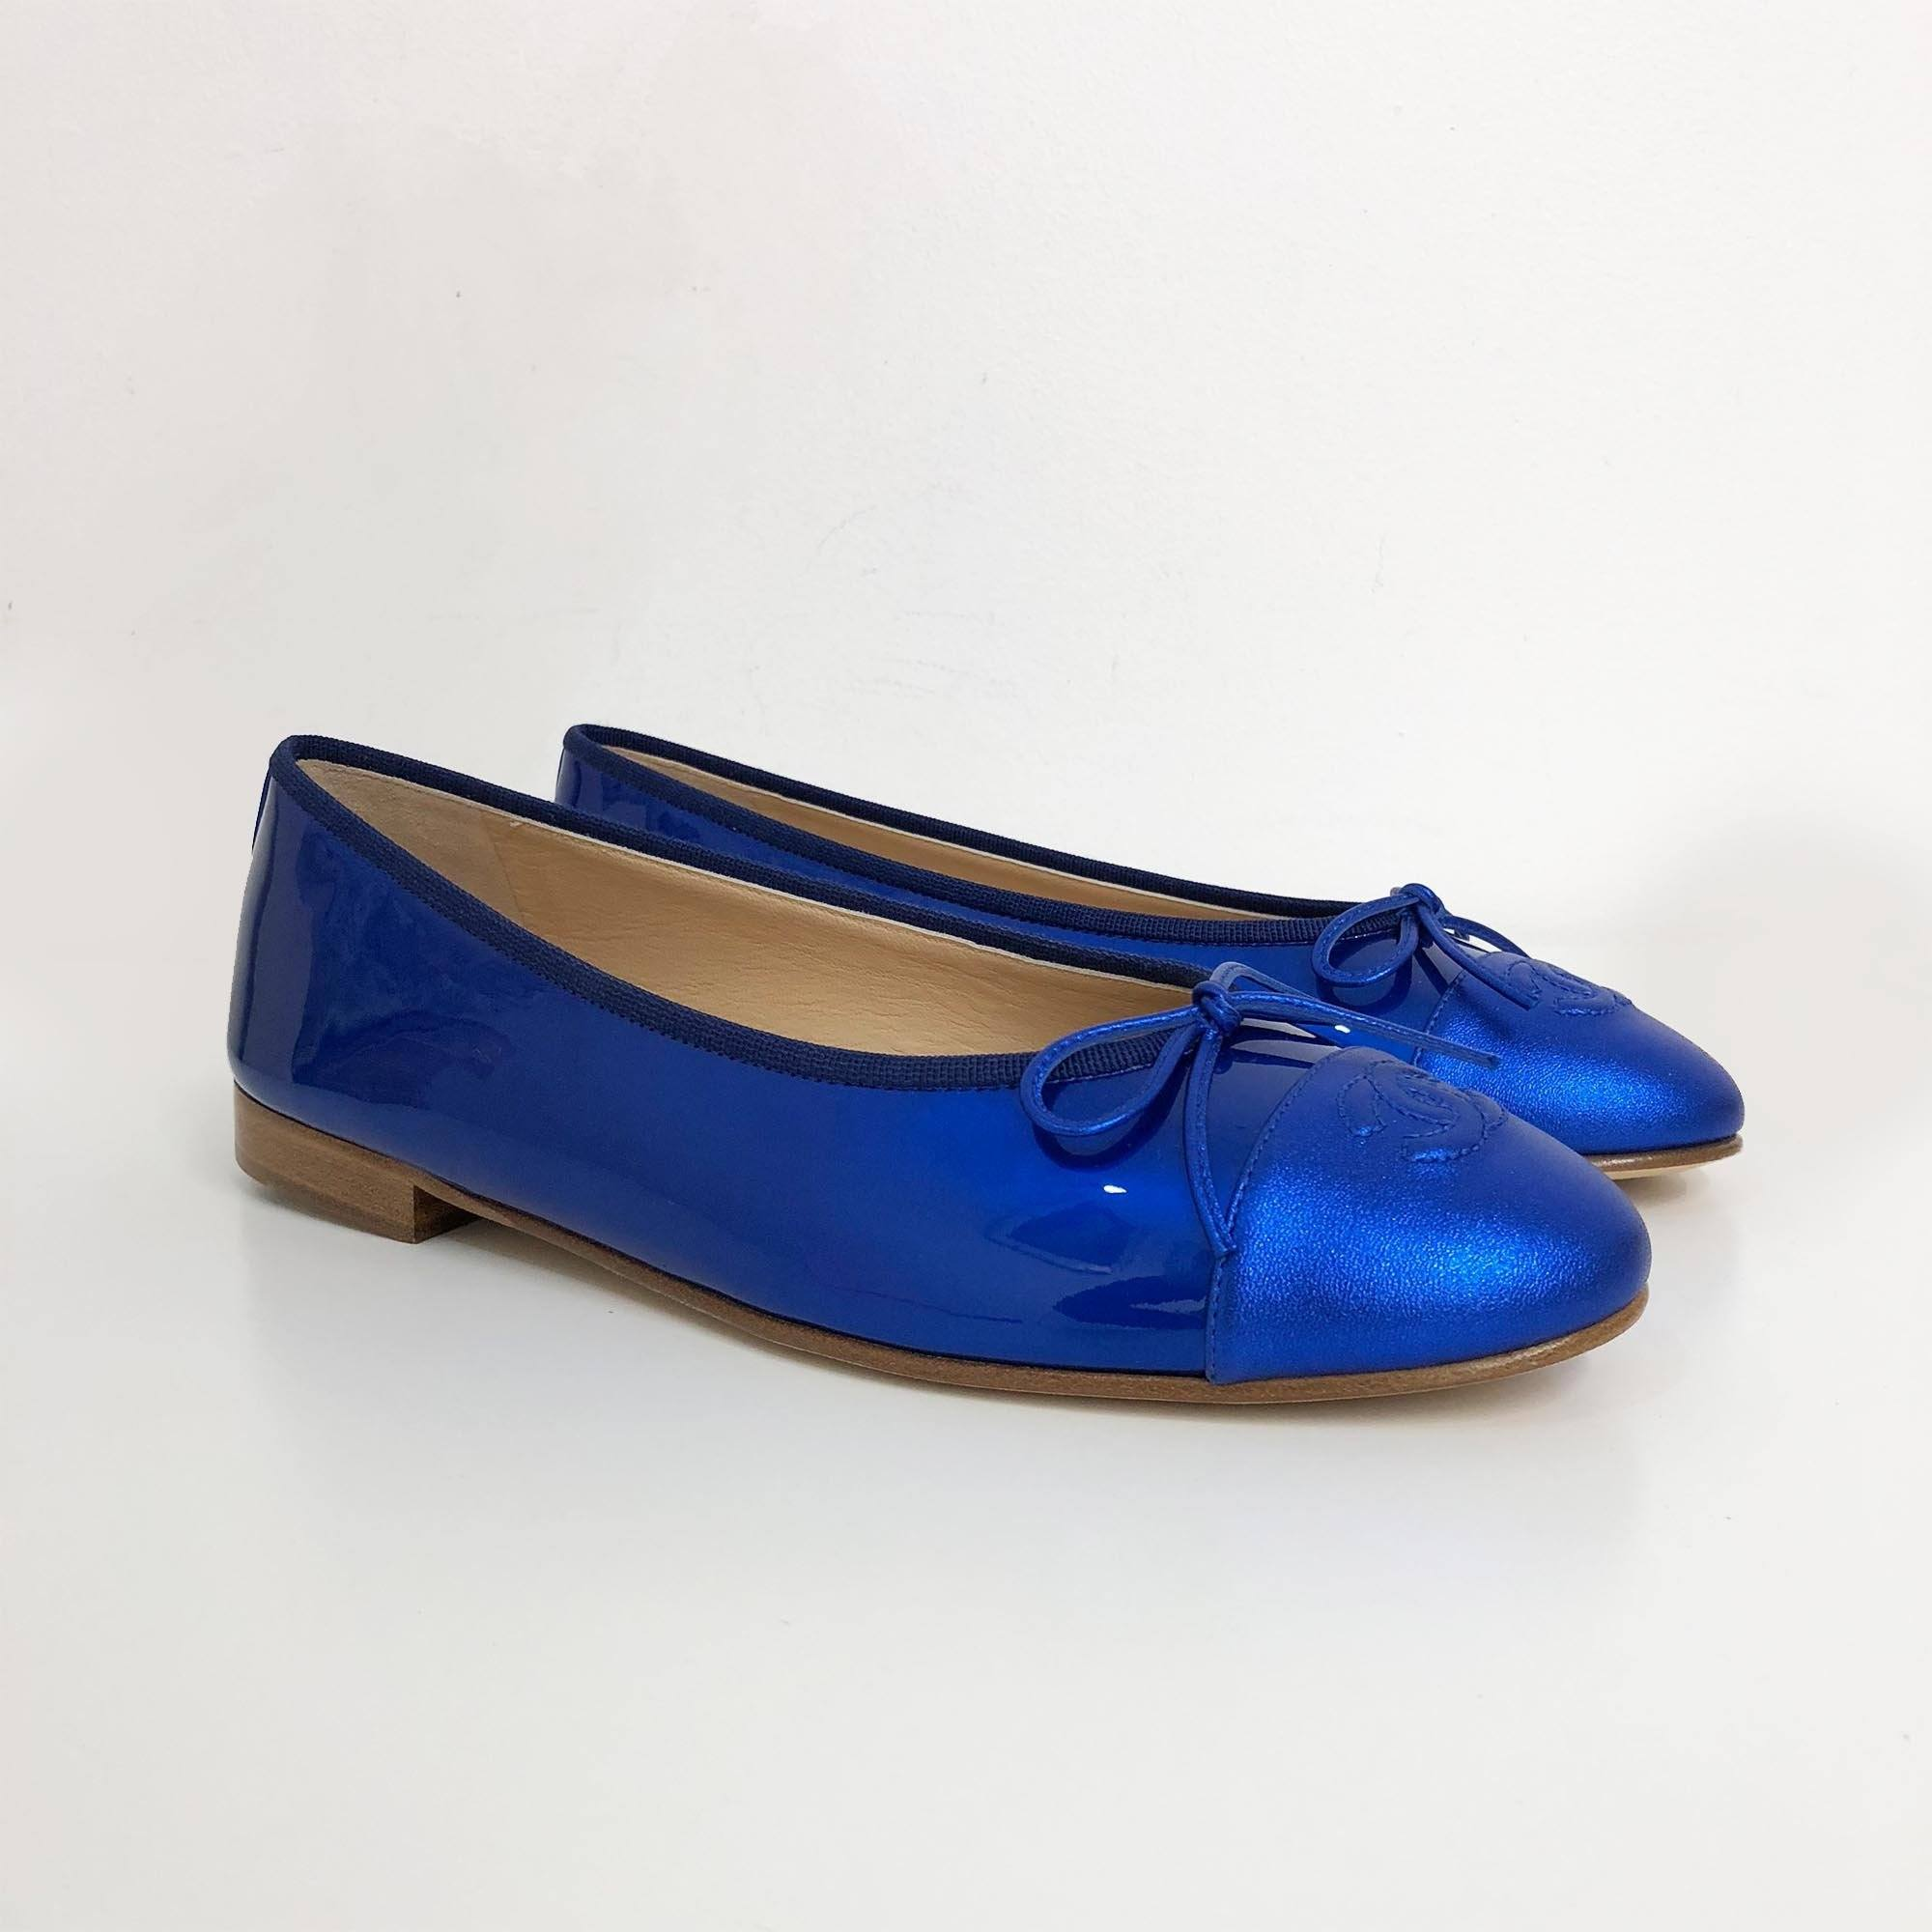 Chanel Shiny Blue Patent Leather CC Cap Toe Ballerina Flats